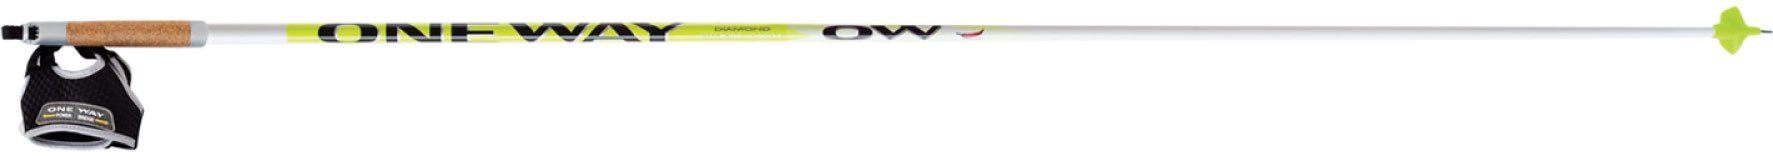 Oneway DS10 cross country ski pole